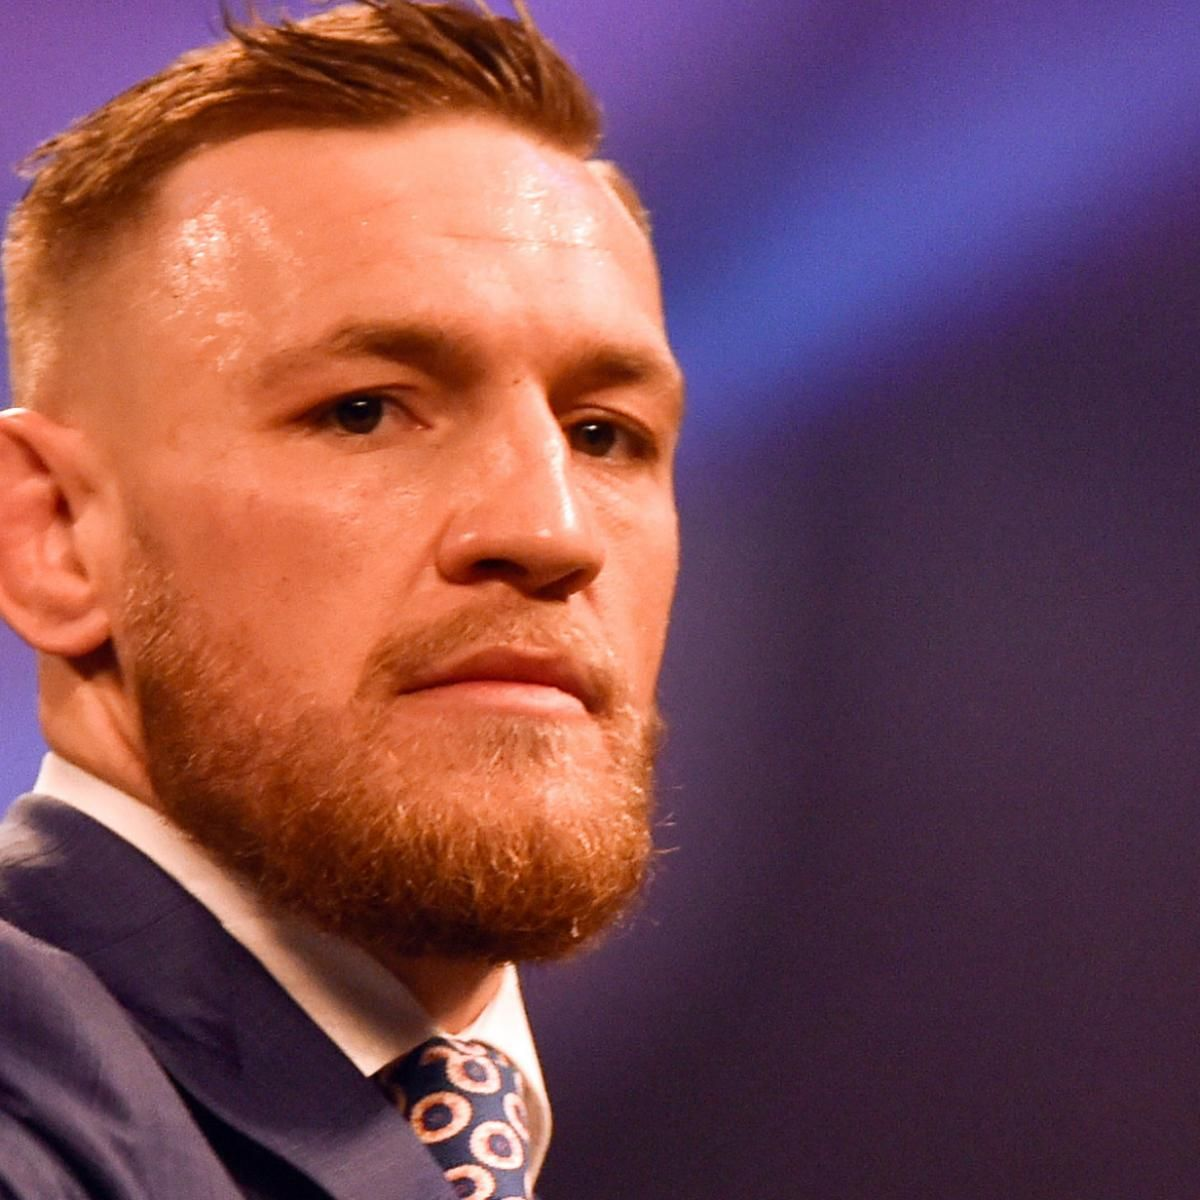 The Secret That Led Conor McGregor to Fame, Fortune and Floyd Mayweather - Bleacher Report